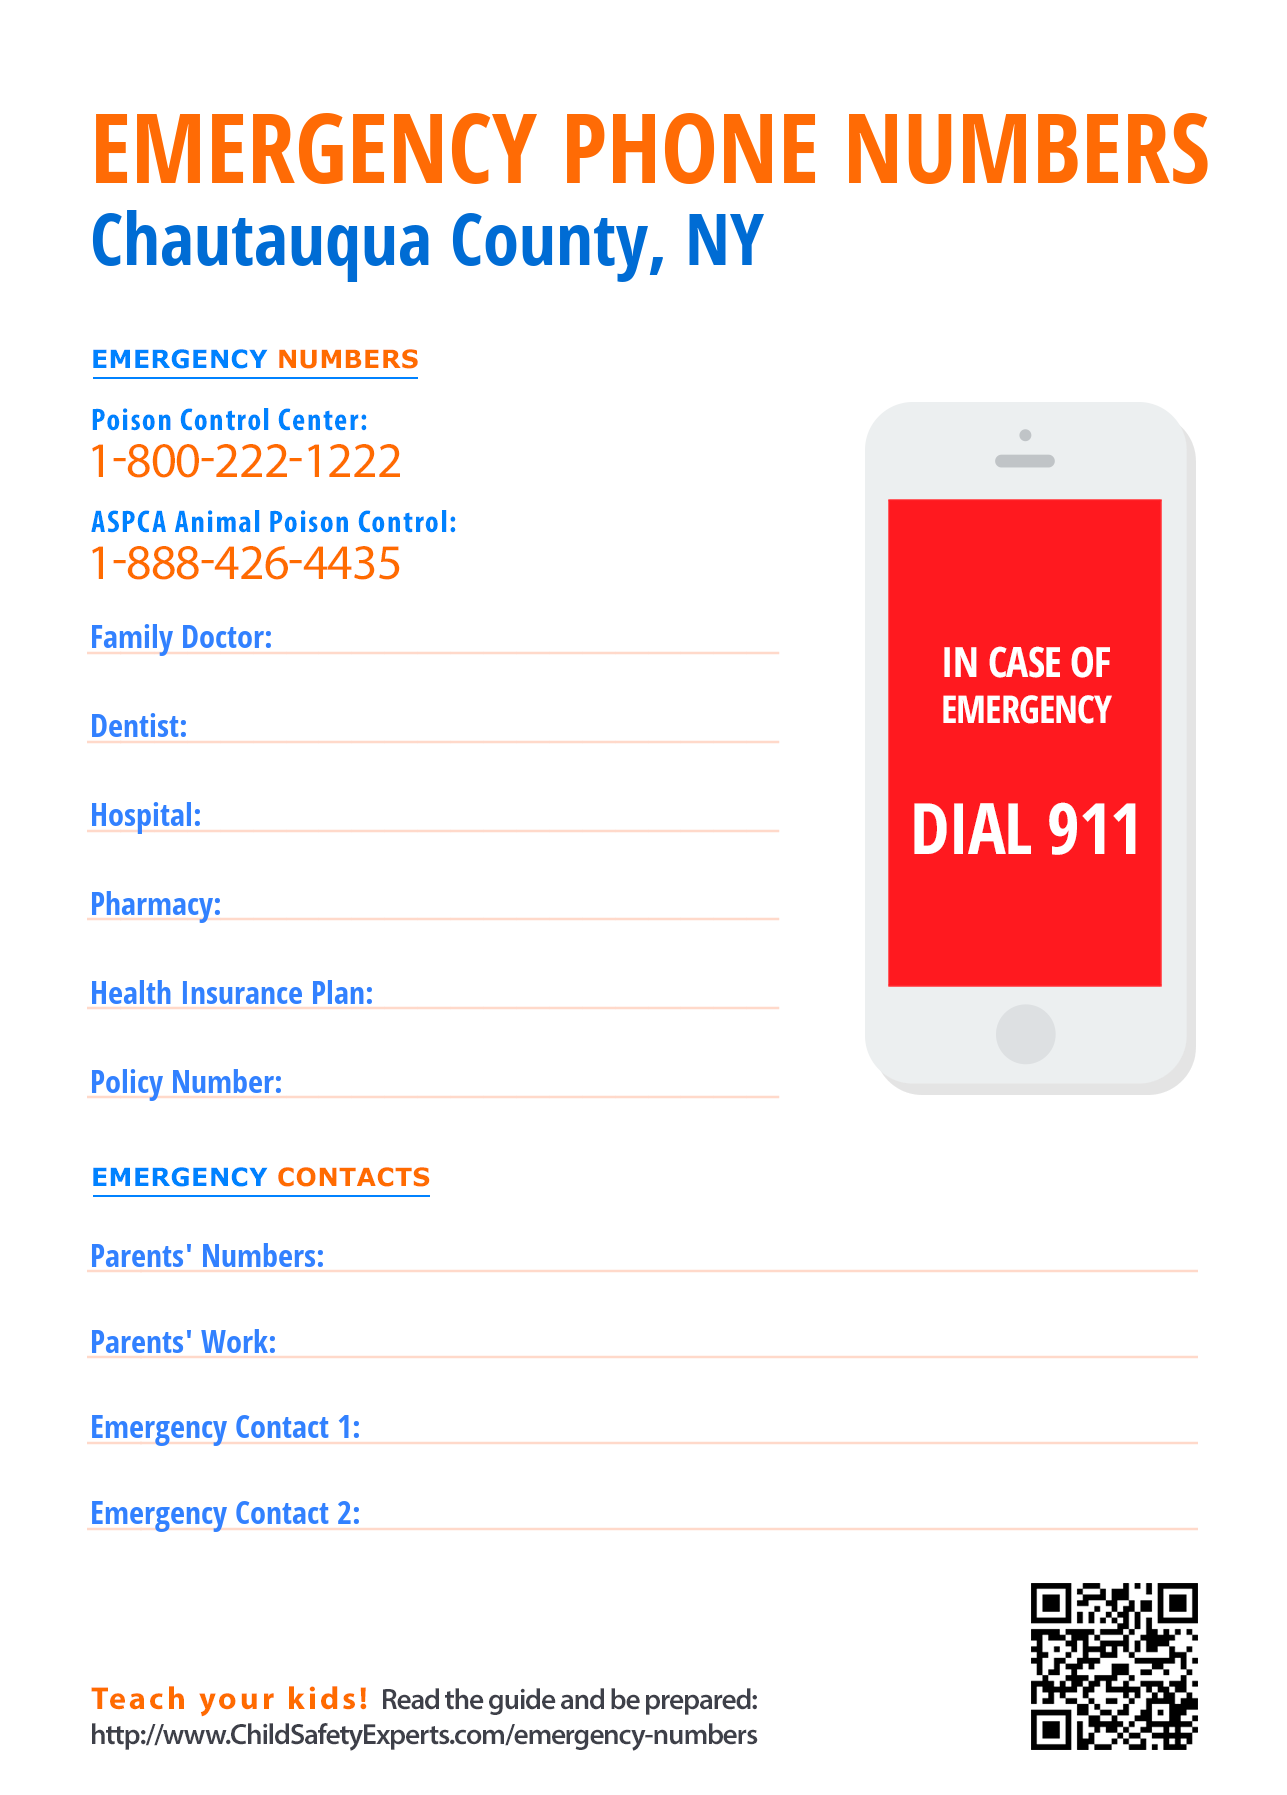 Important emergency phone numbers in Chautauqua County, New York